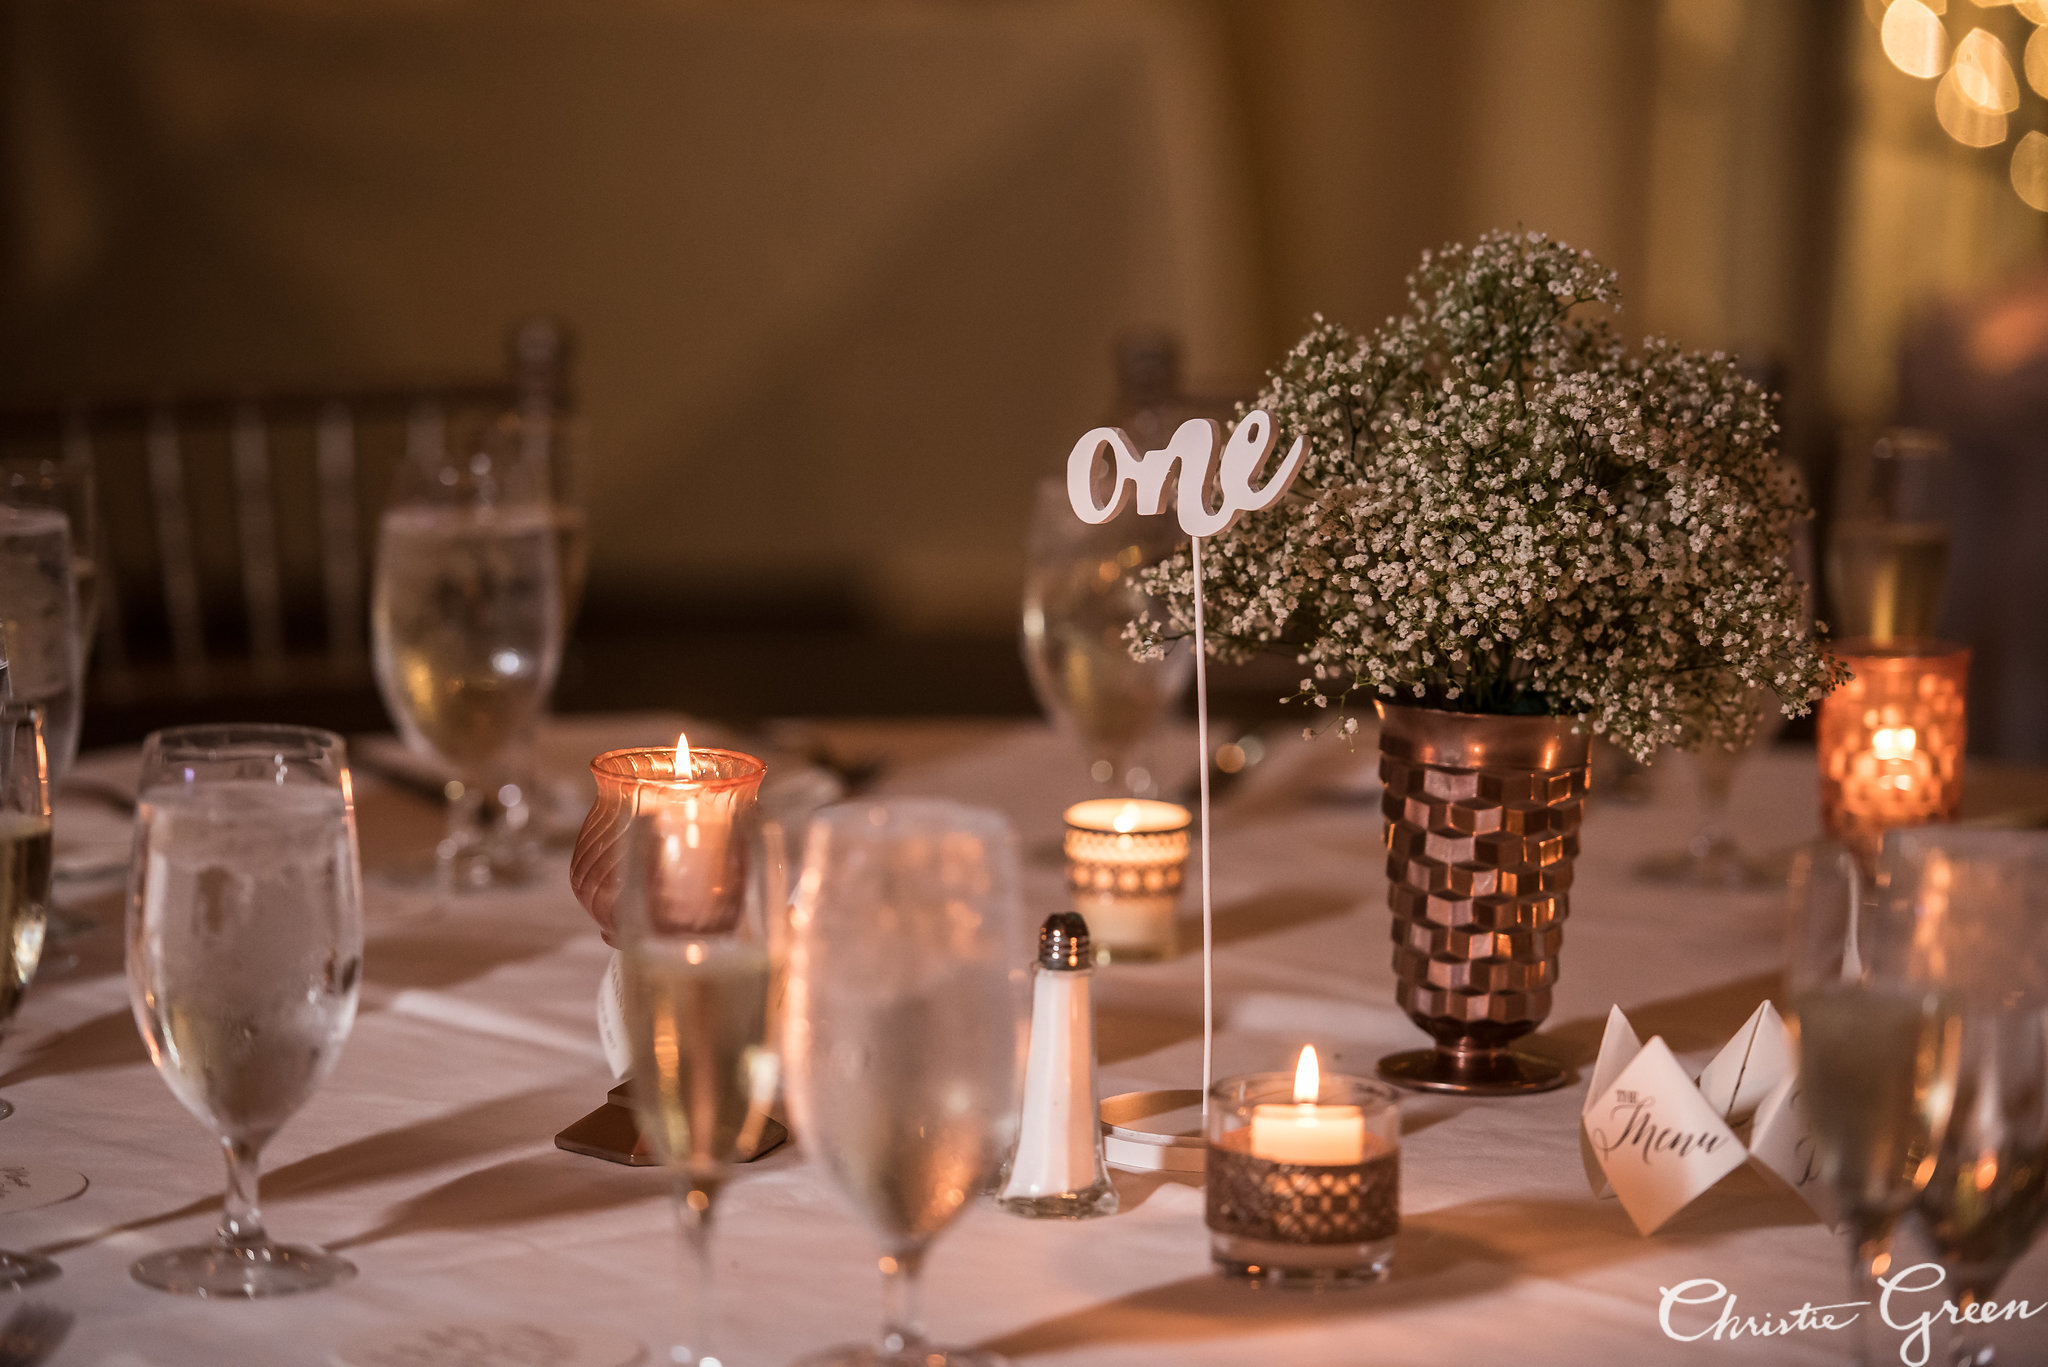 Sometimes baby's breath is just the right amount of florals for centerpieces.